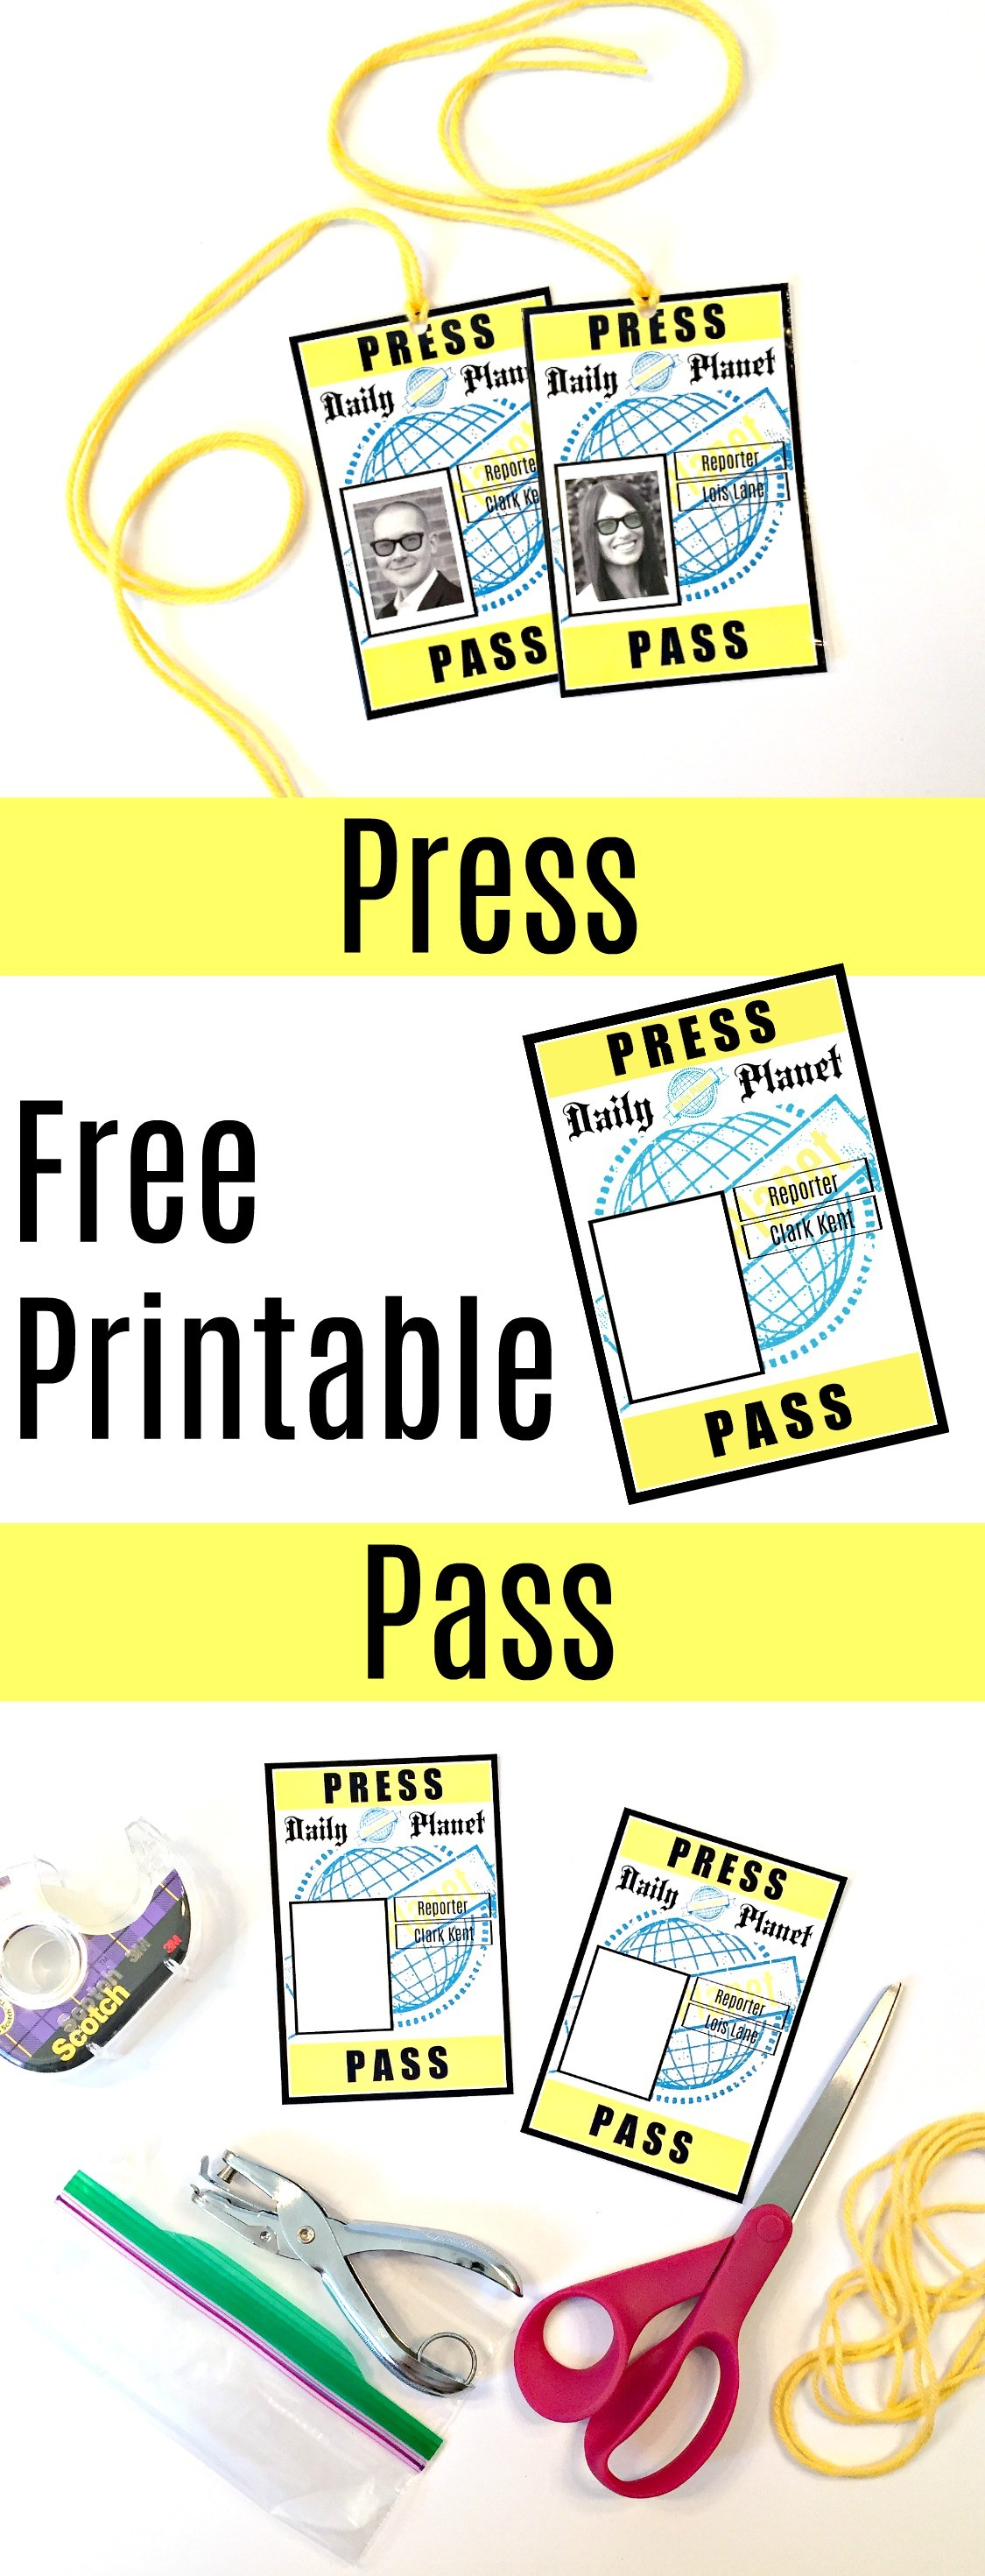 picture about Lois Lane Press Pass Printable known as No cost Printable Push P For Lois Lane And Clark Kent